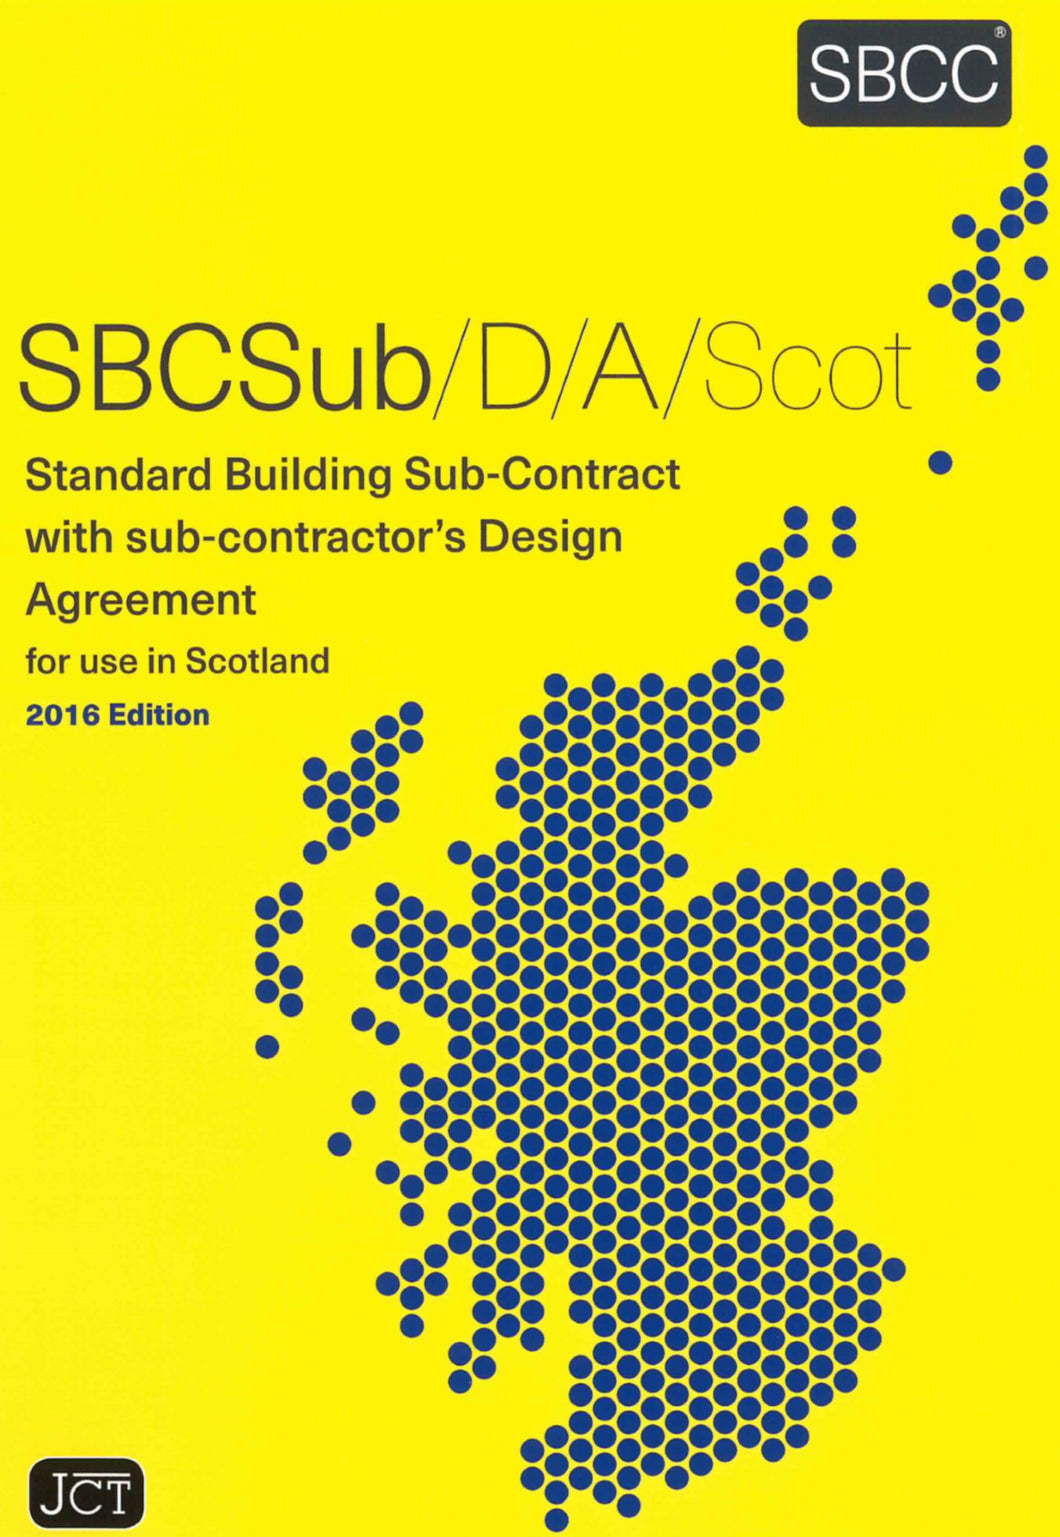 Standard Building Sub-Contract with Sub-Contractor's Design Agreement Scotland 2016